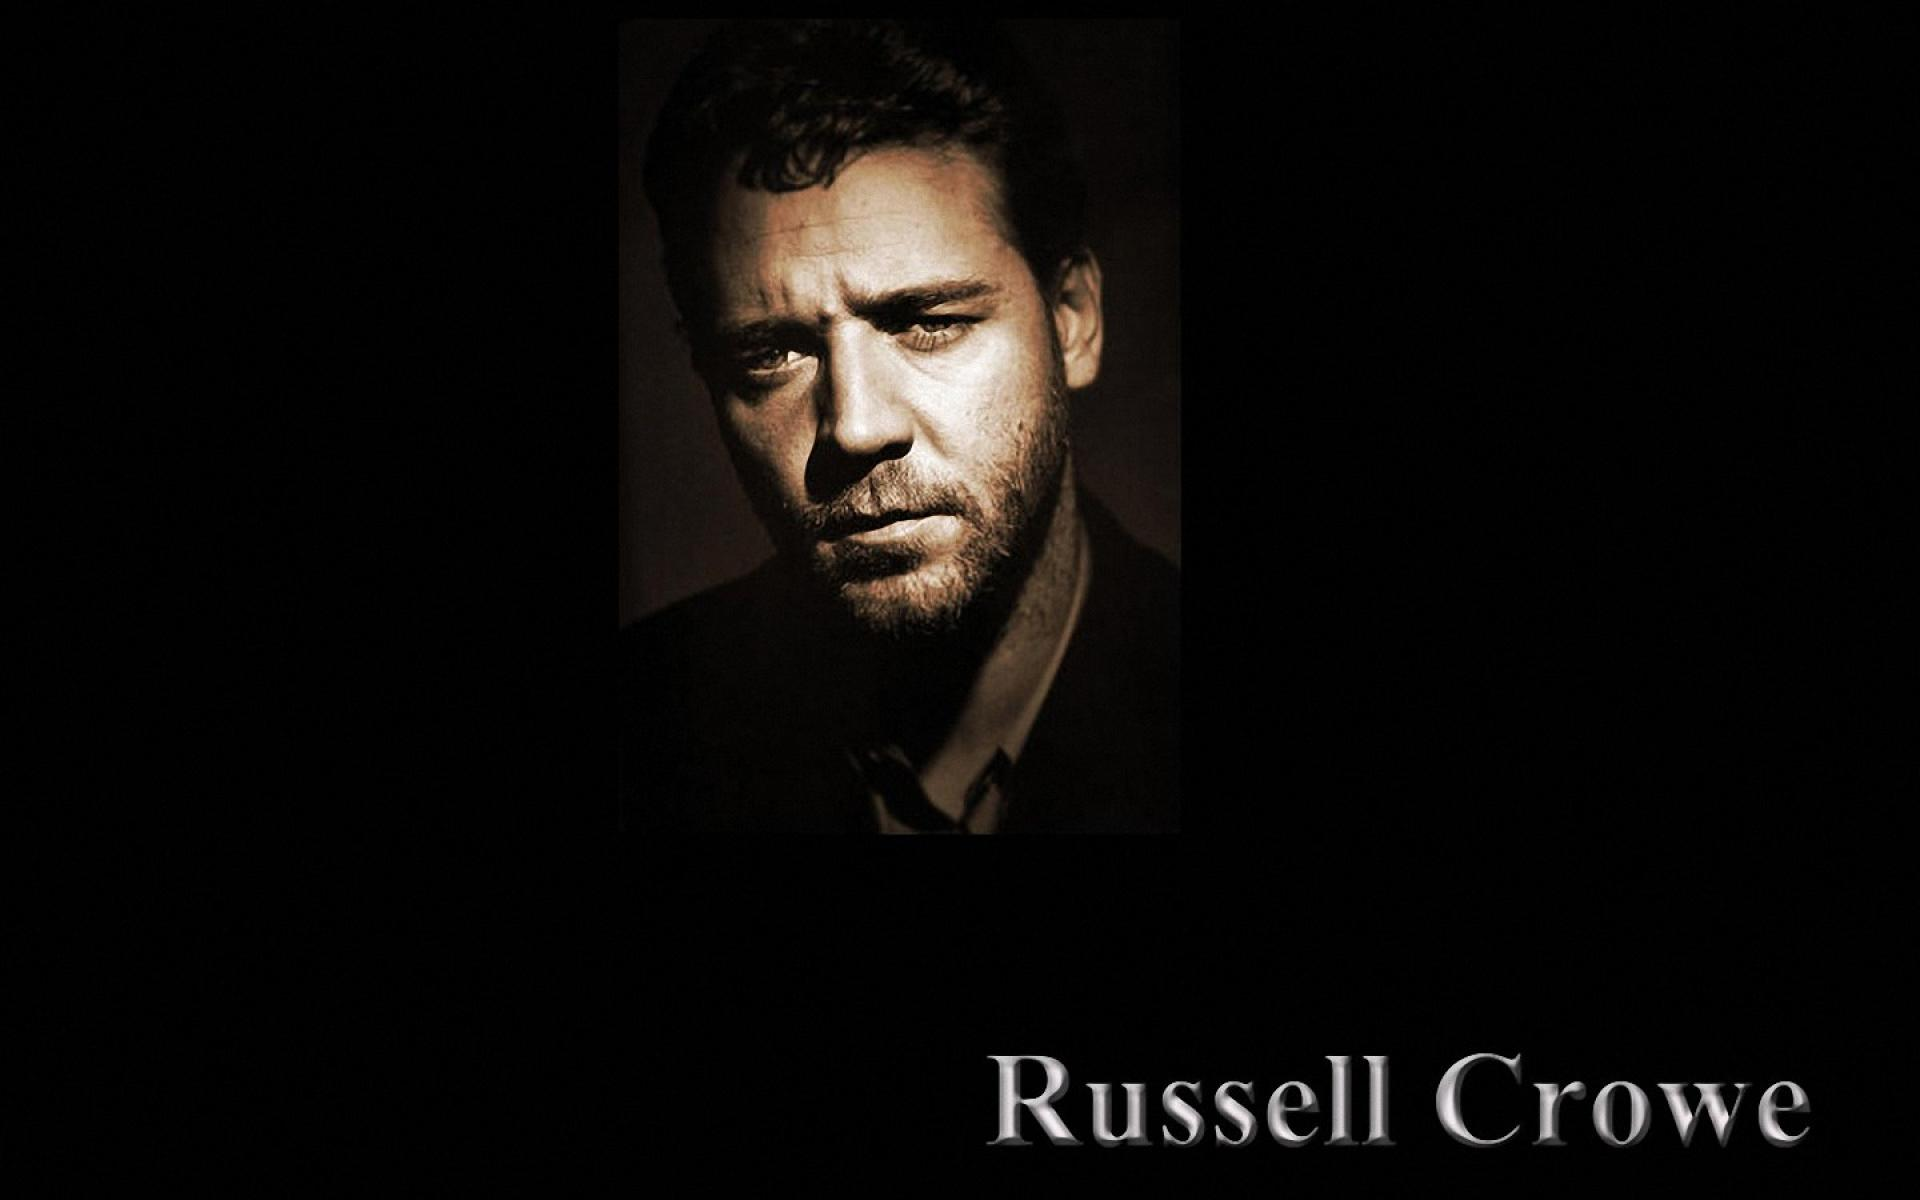 Russell Crowe 25 Thumb